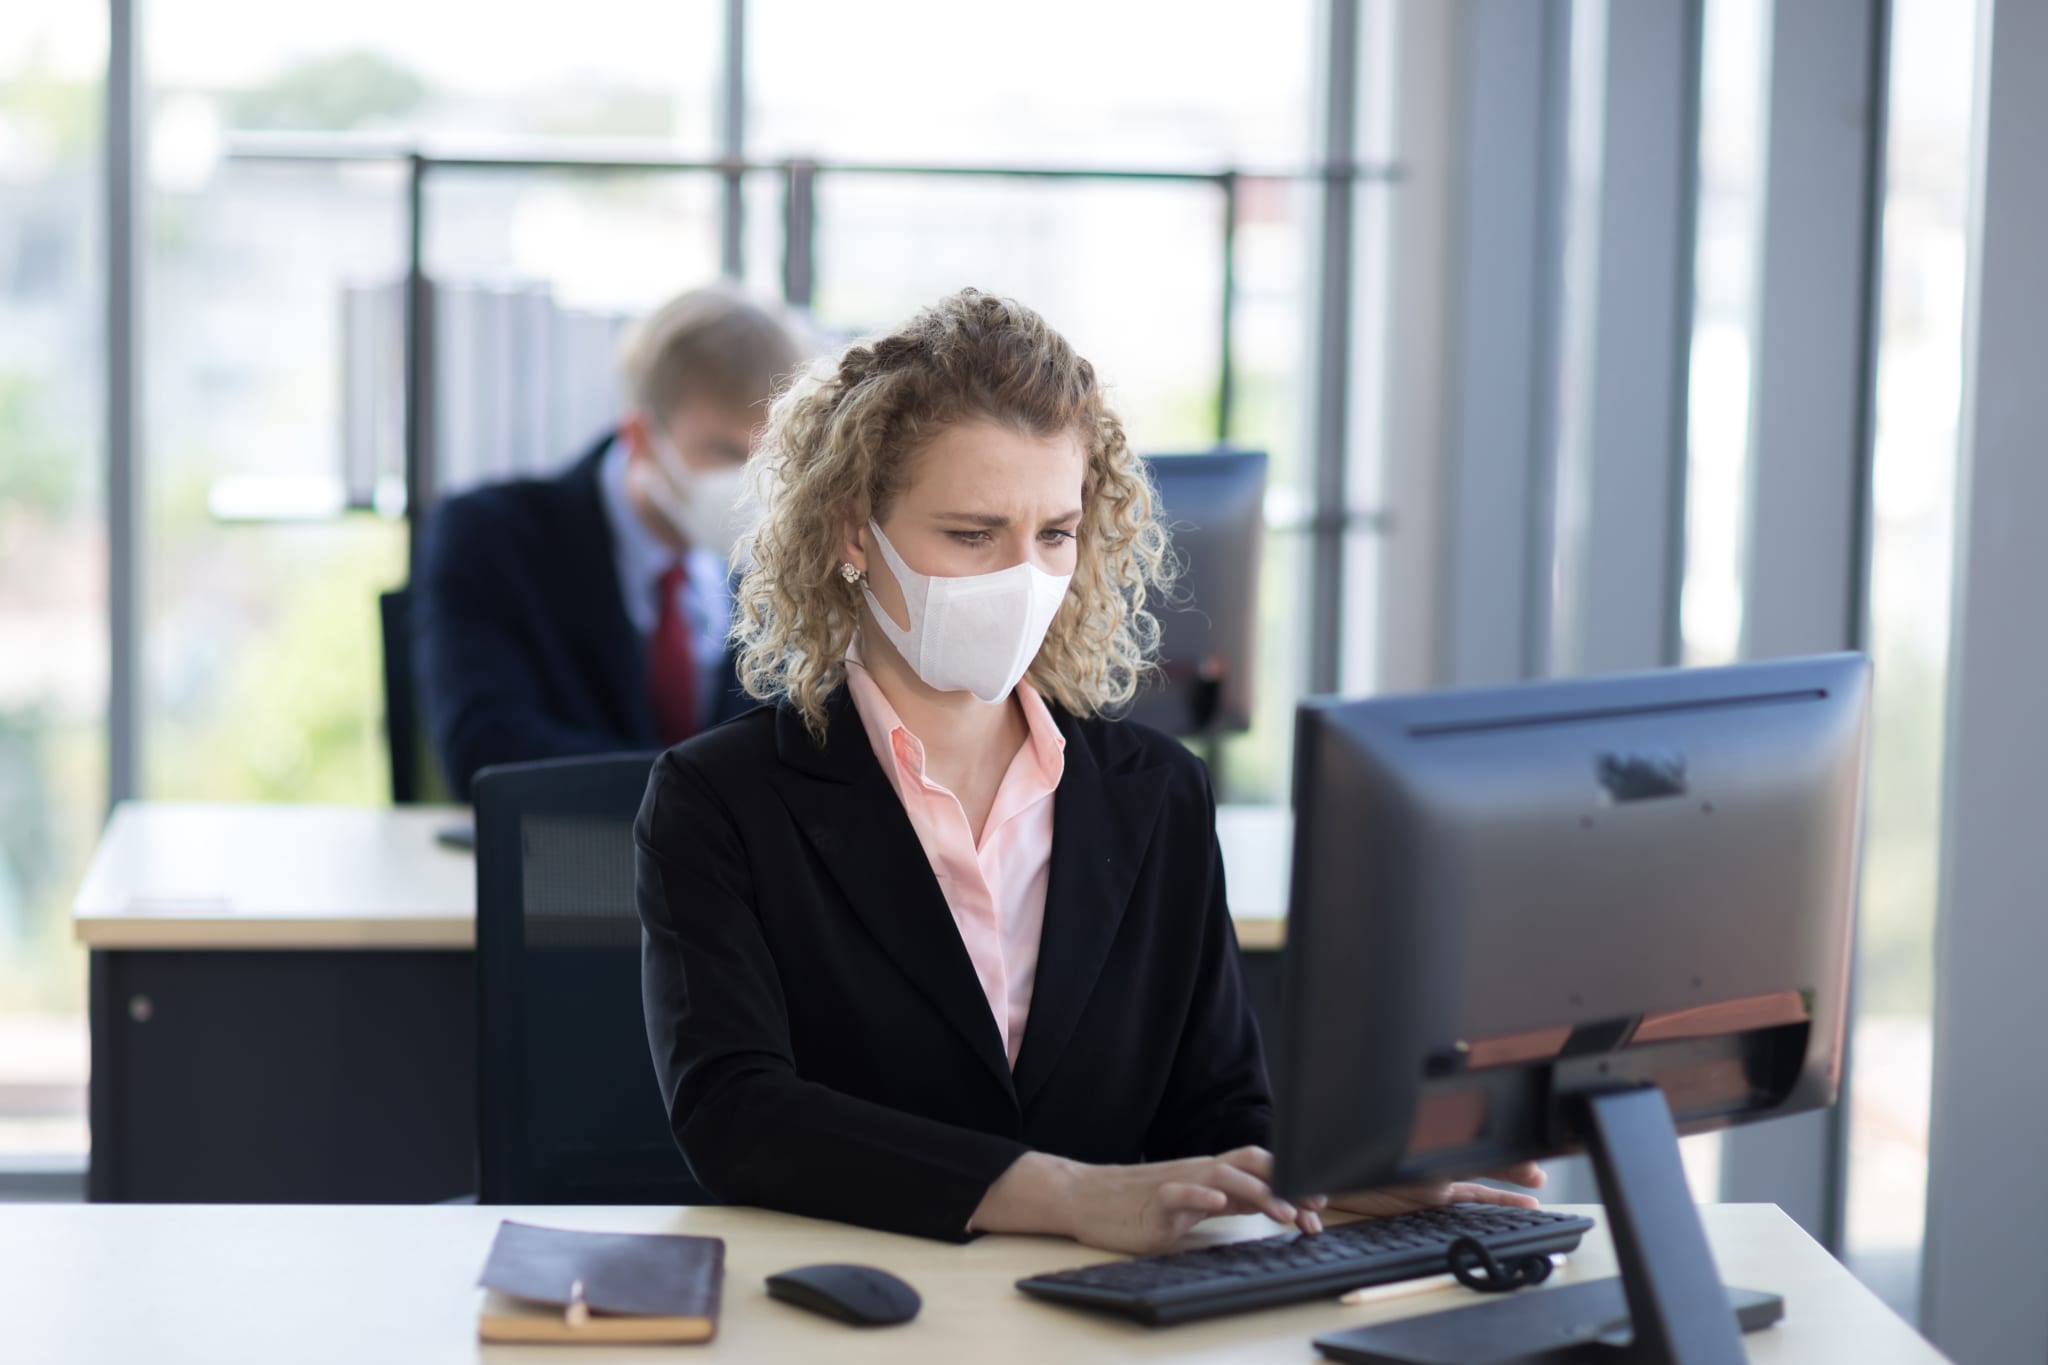 Image of a woman working at her compture with a face mask on.